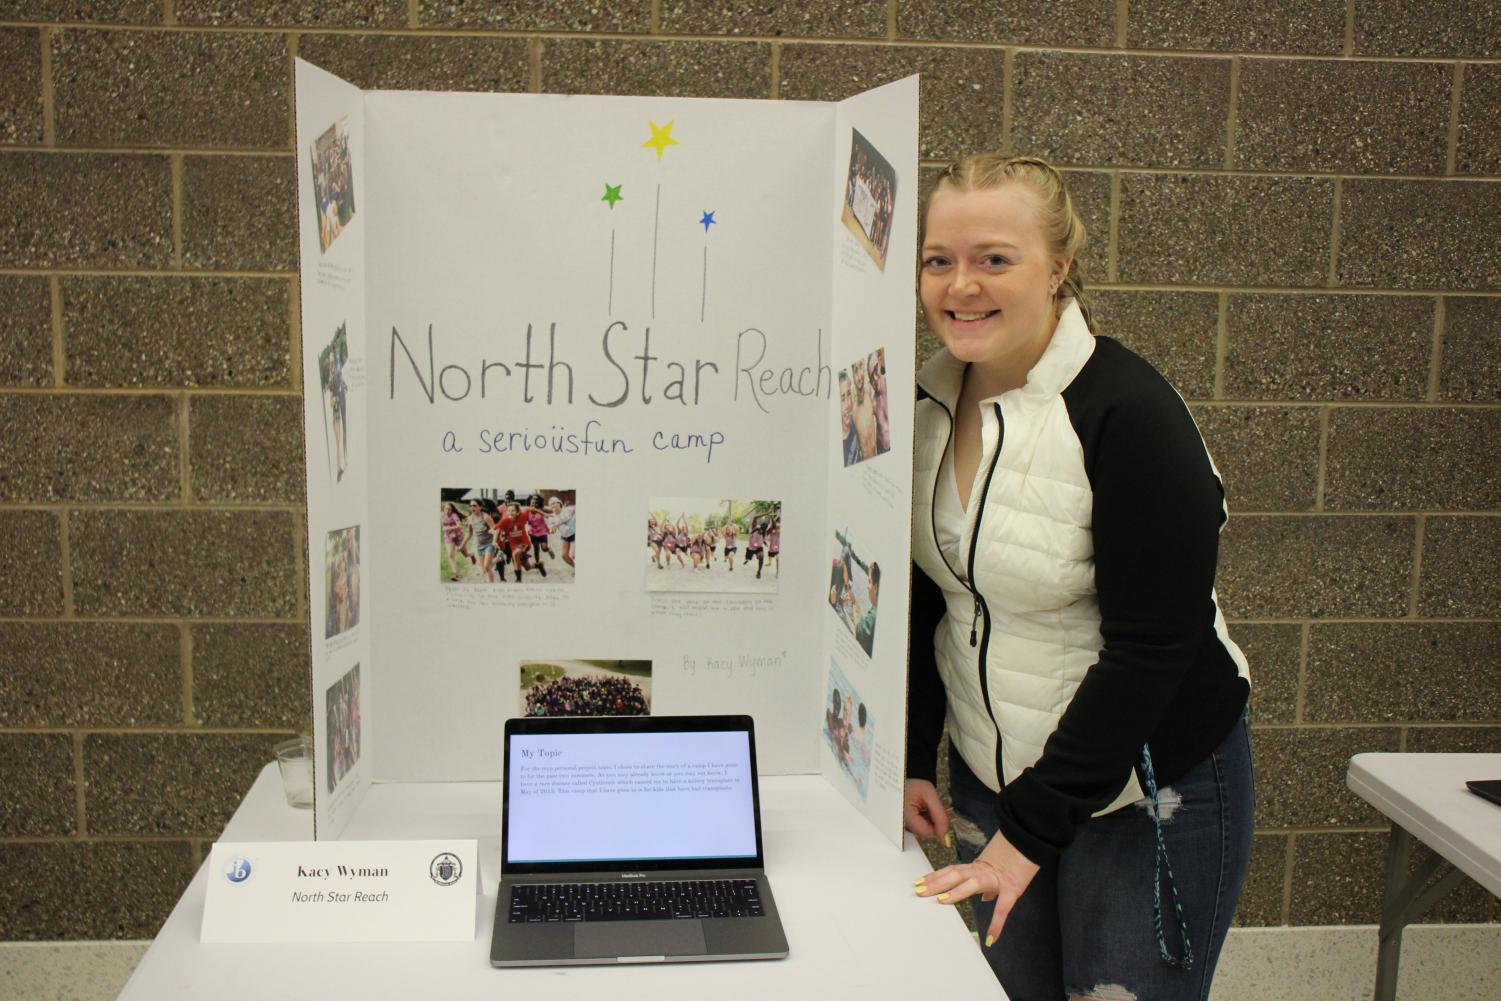 Kacy+Wyman+poses+with+her+%E2%80%9CNorth+Star+Reach%E2%80%9D+project+during+the+MYP+Celebration+Night.